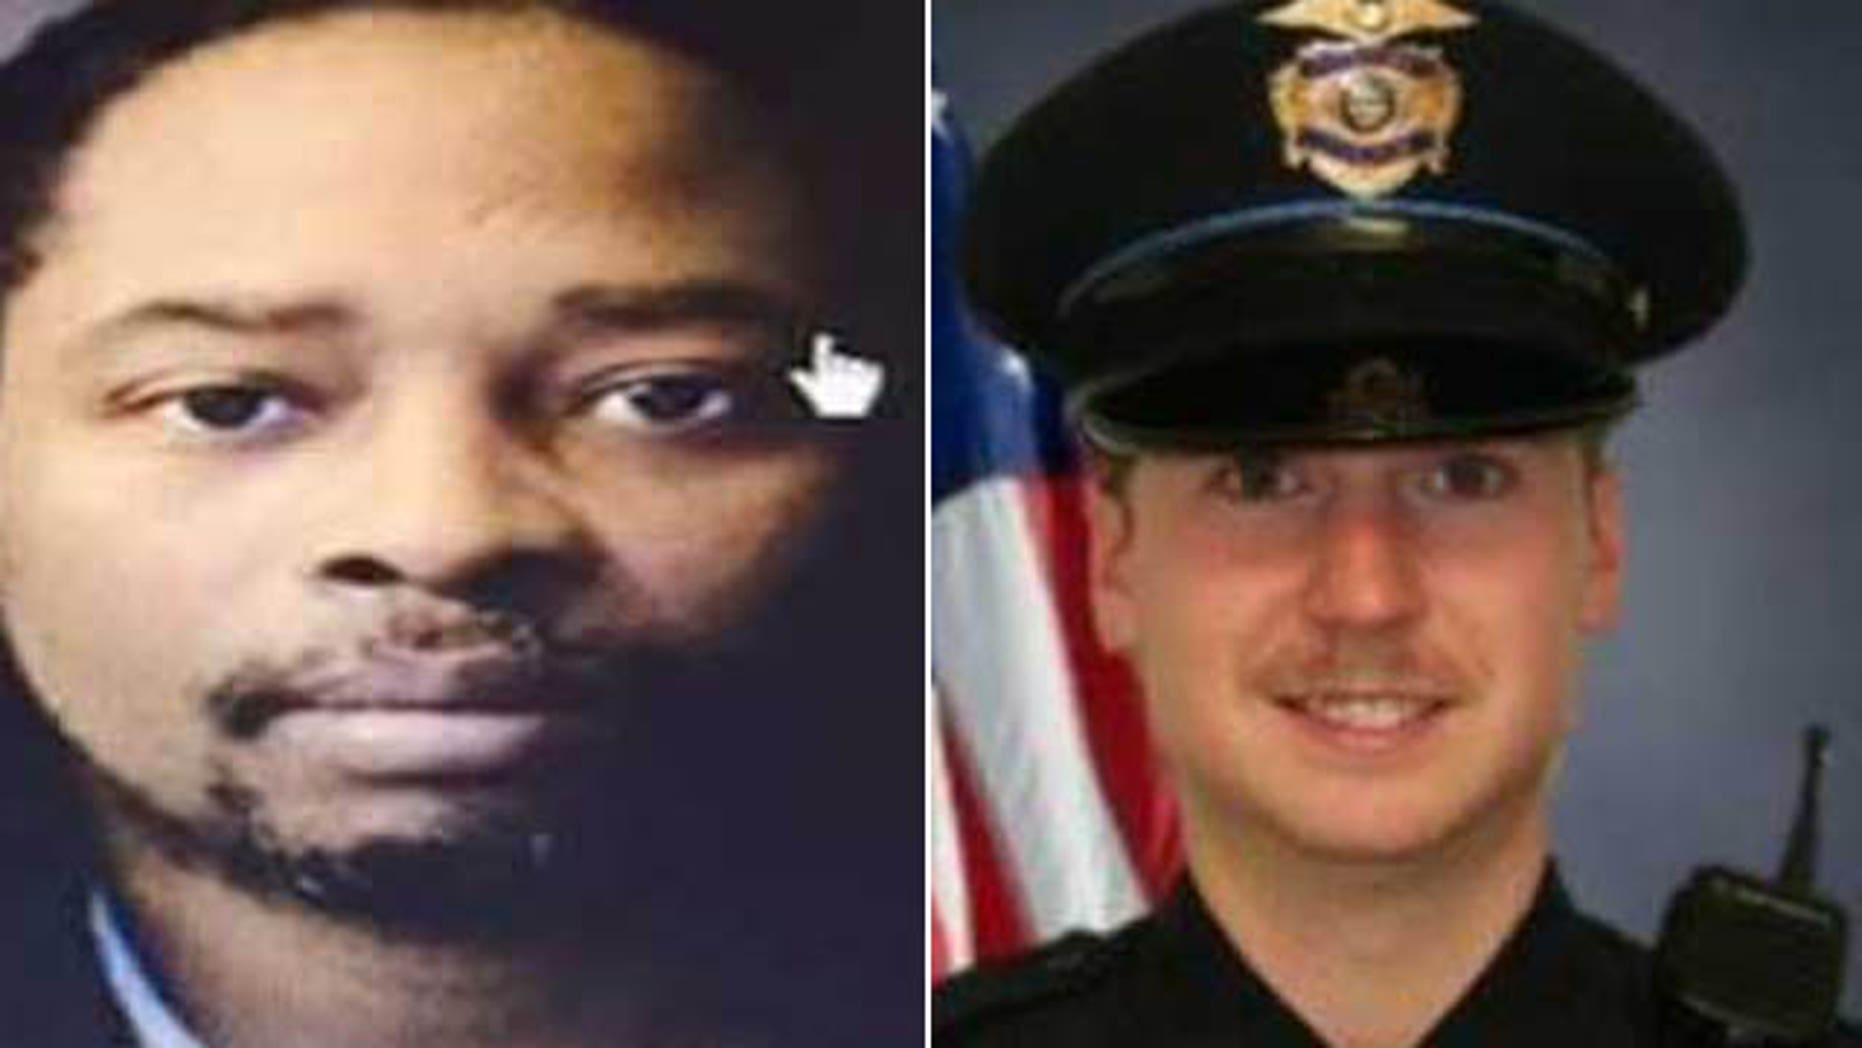 These undated photos show Samuel Dubose, left, and police officer Ray Tensing. Dubose was shot and killed by Tensing Sunday, July 19, 2015 after a confrontation during a traffic stop. (Dubose family/Greenhils Police Department)